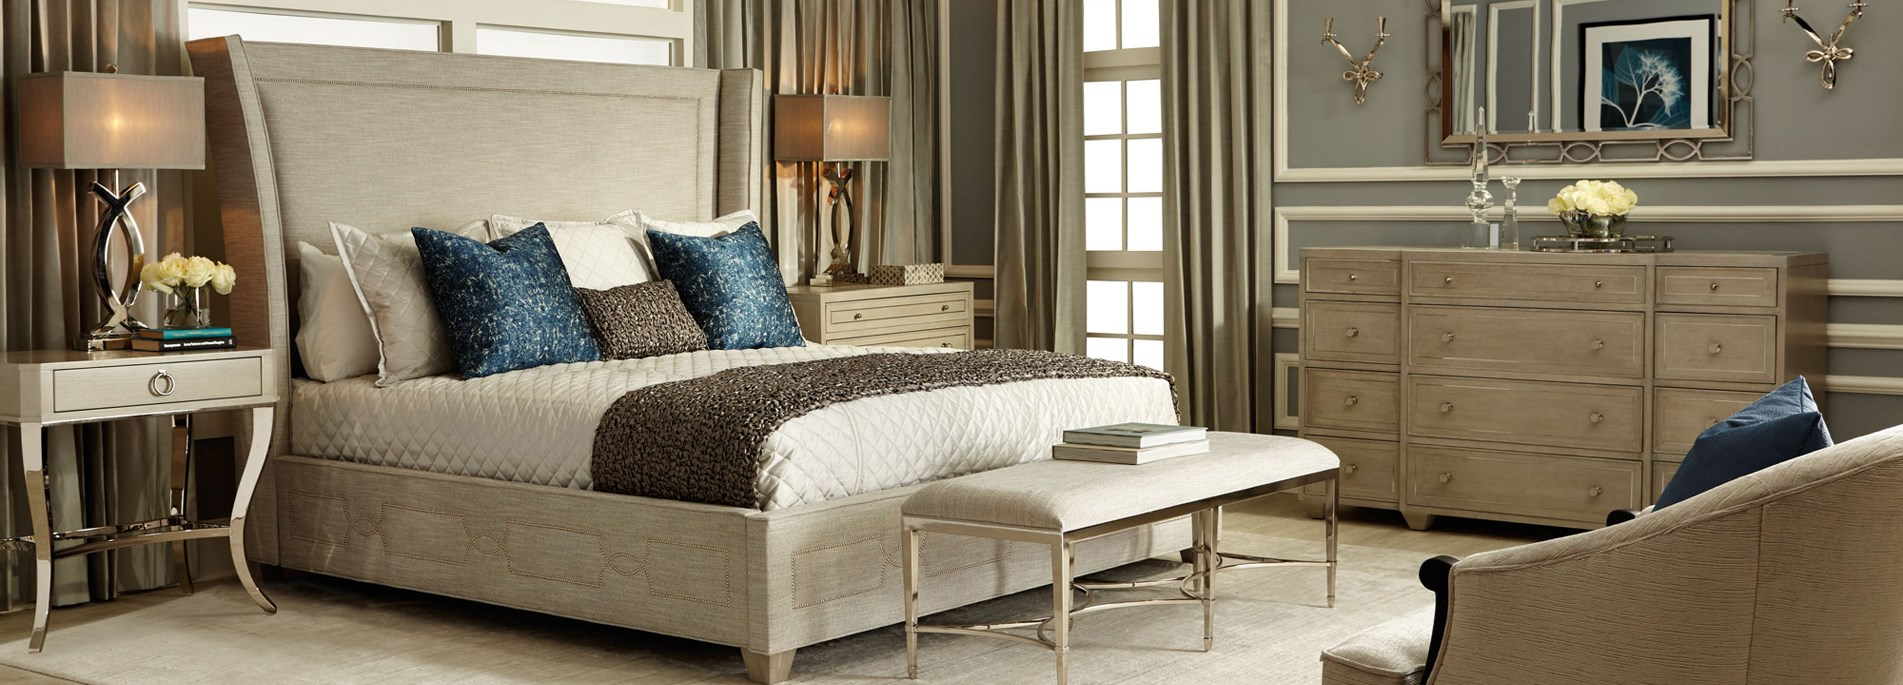 Design A Bedroom Florida S Premier Bedroom Furniture Store Baer S Furniture Ft